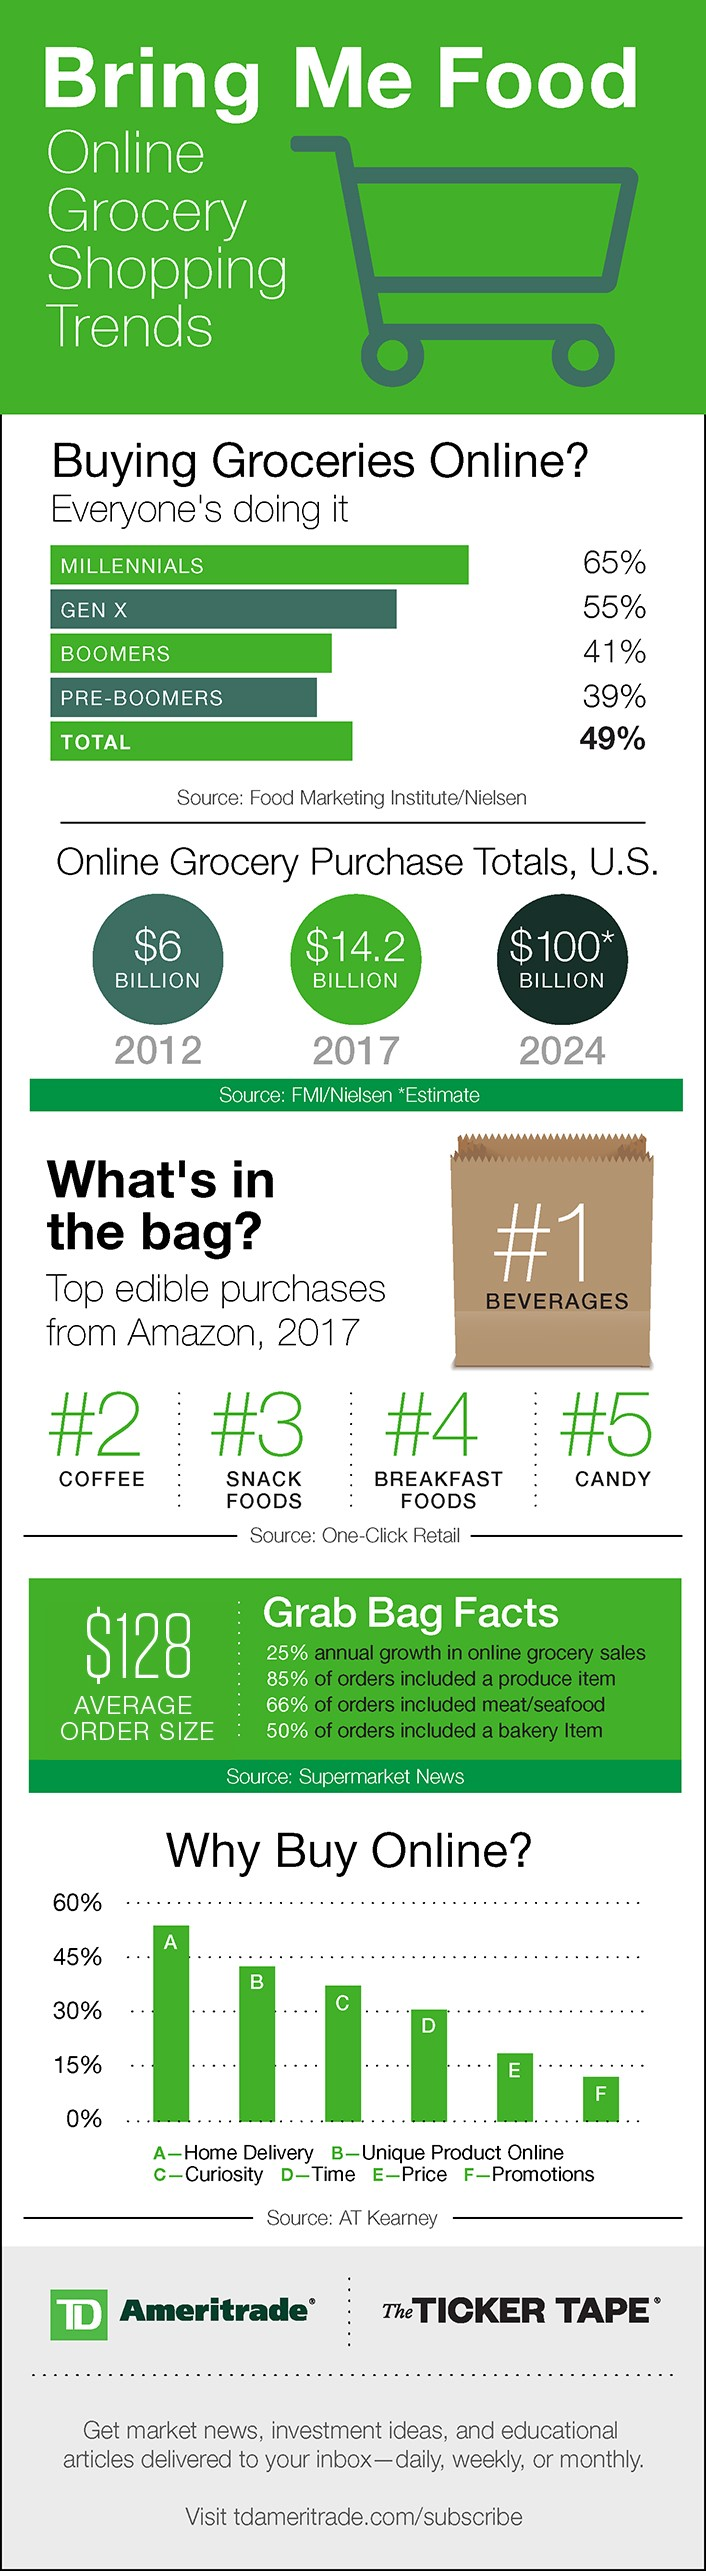 Online grocery retail stats and facts